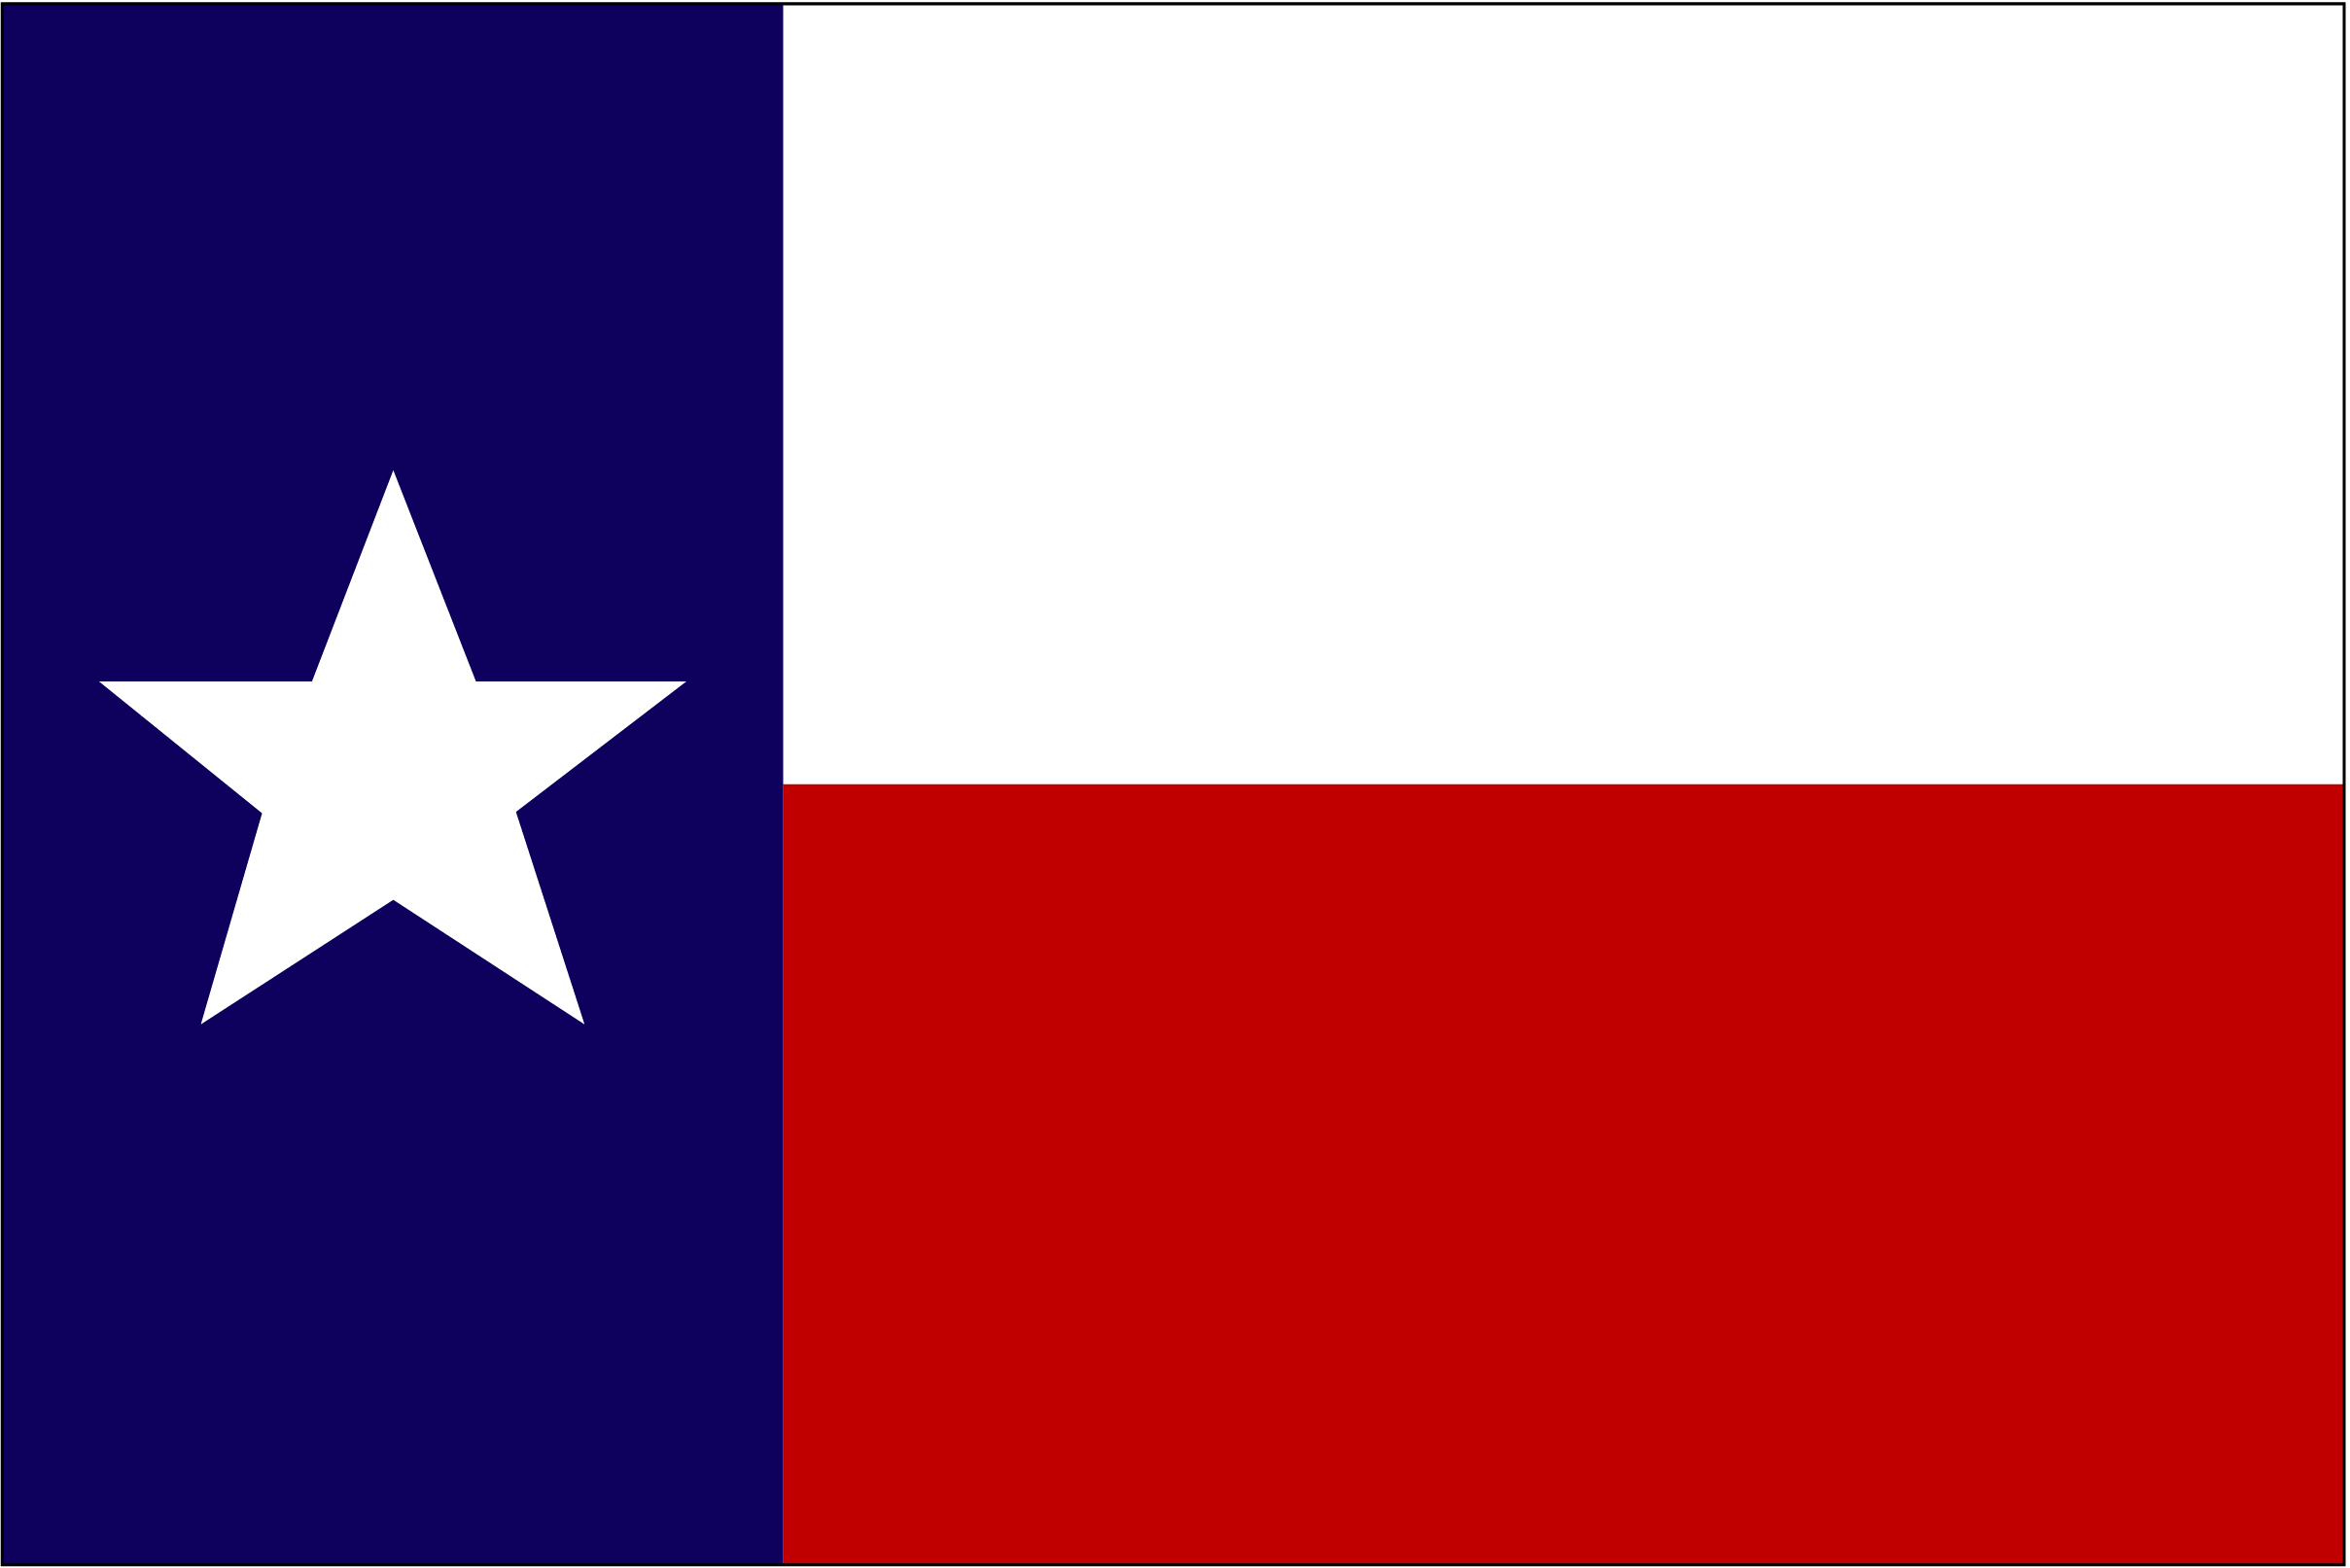 Texas flag clipart png black and white Texas Flag Image   Free download best Texas Flag Image on ... png black and white